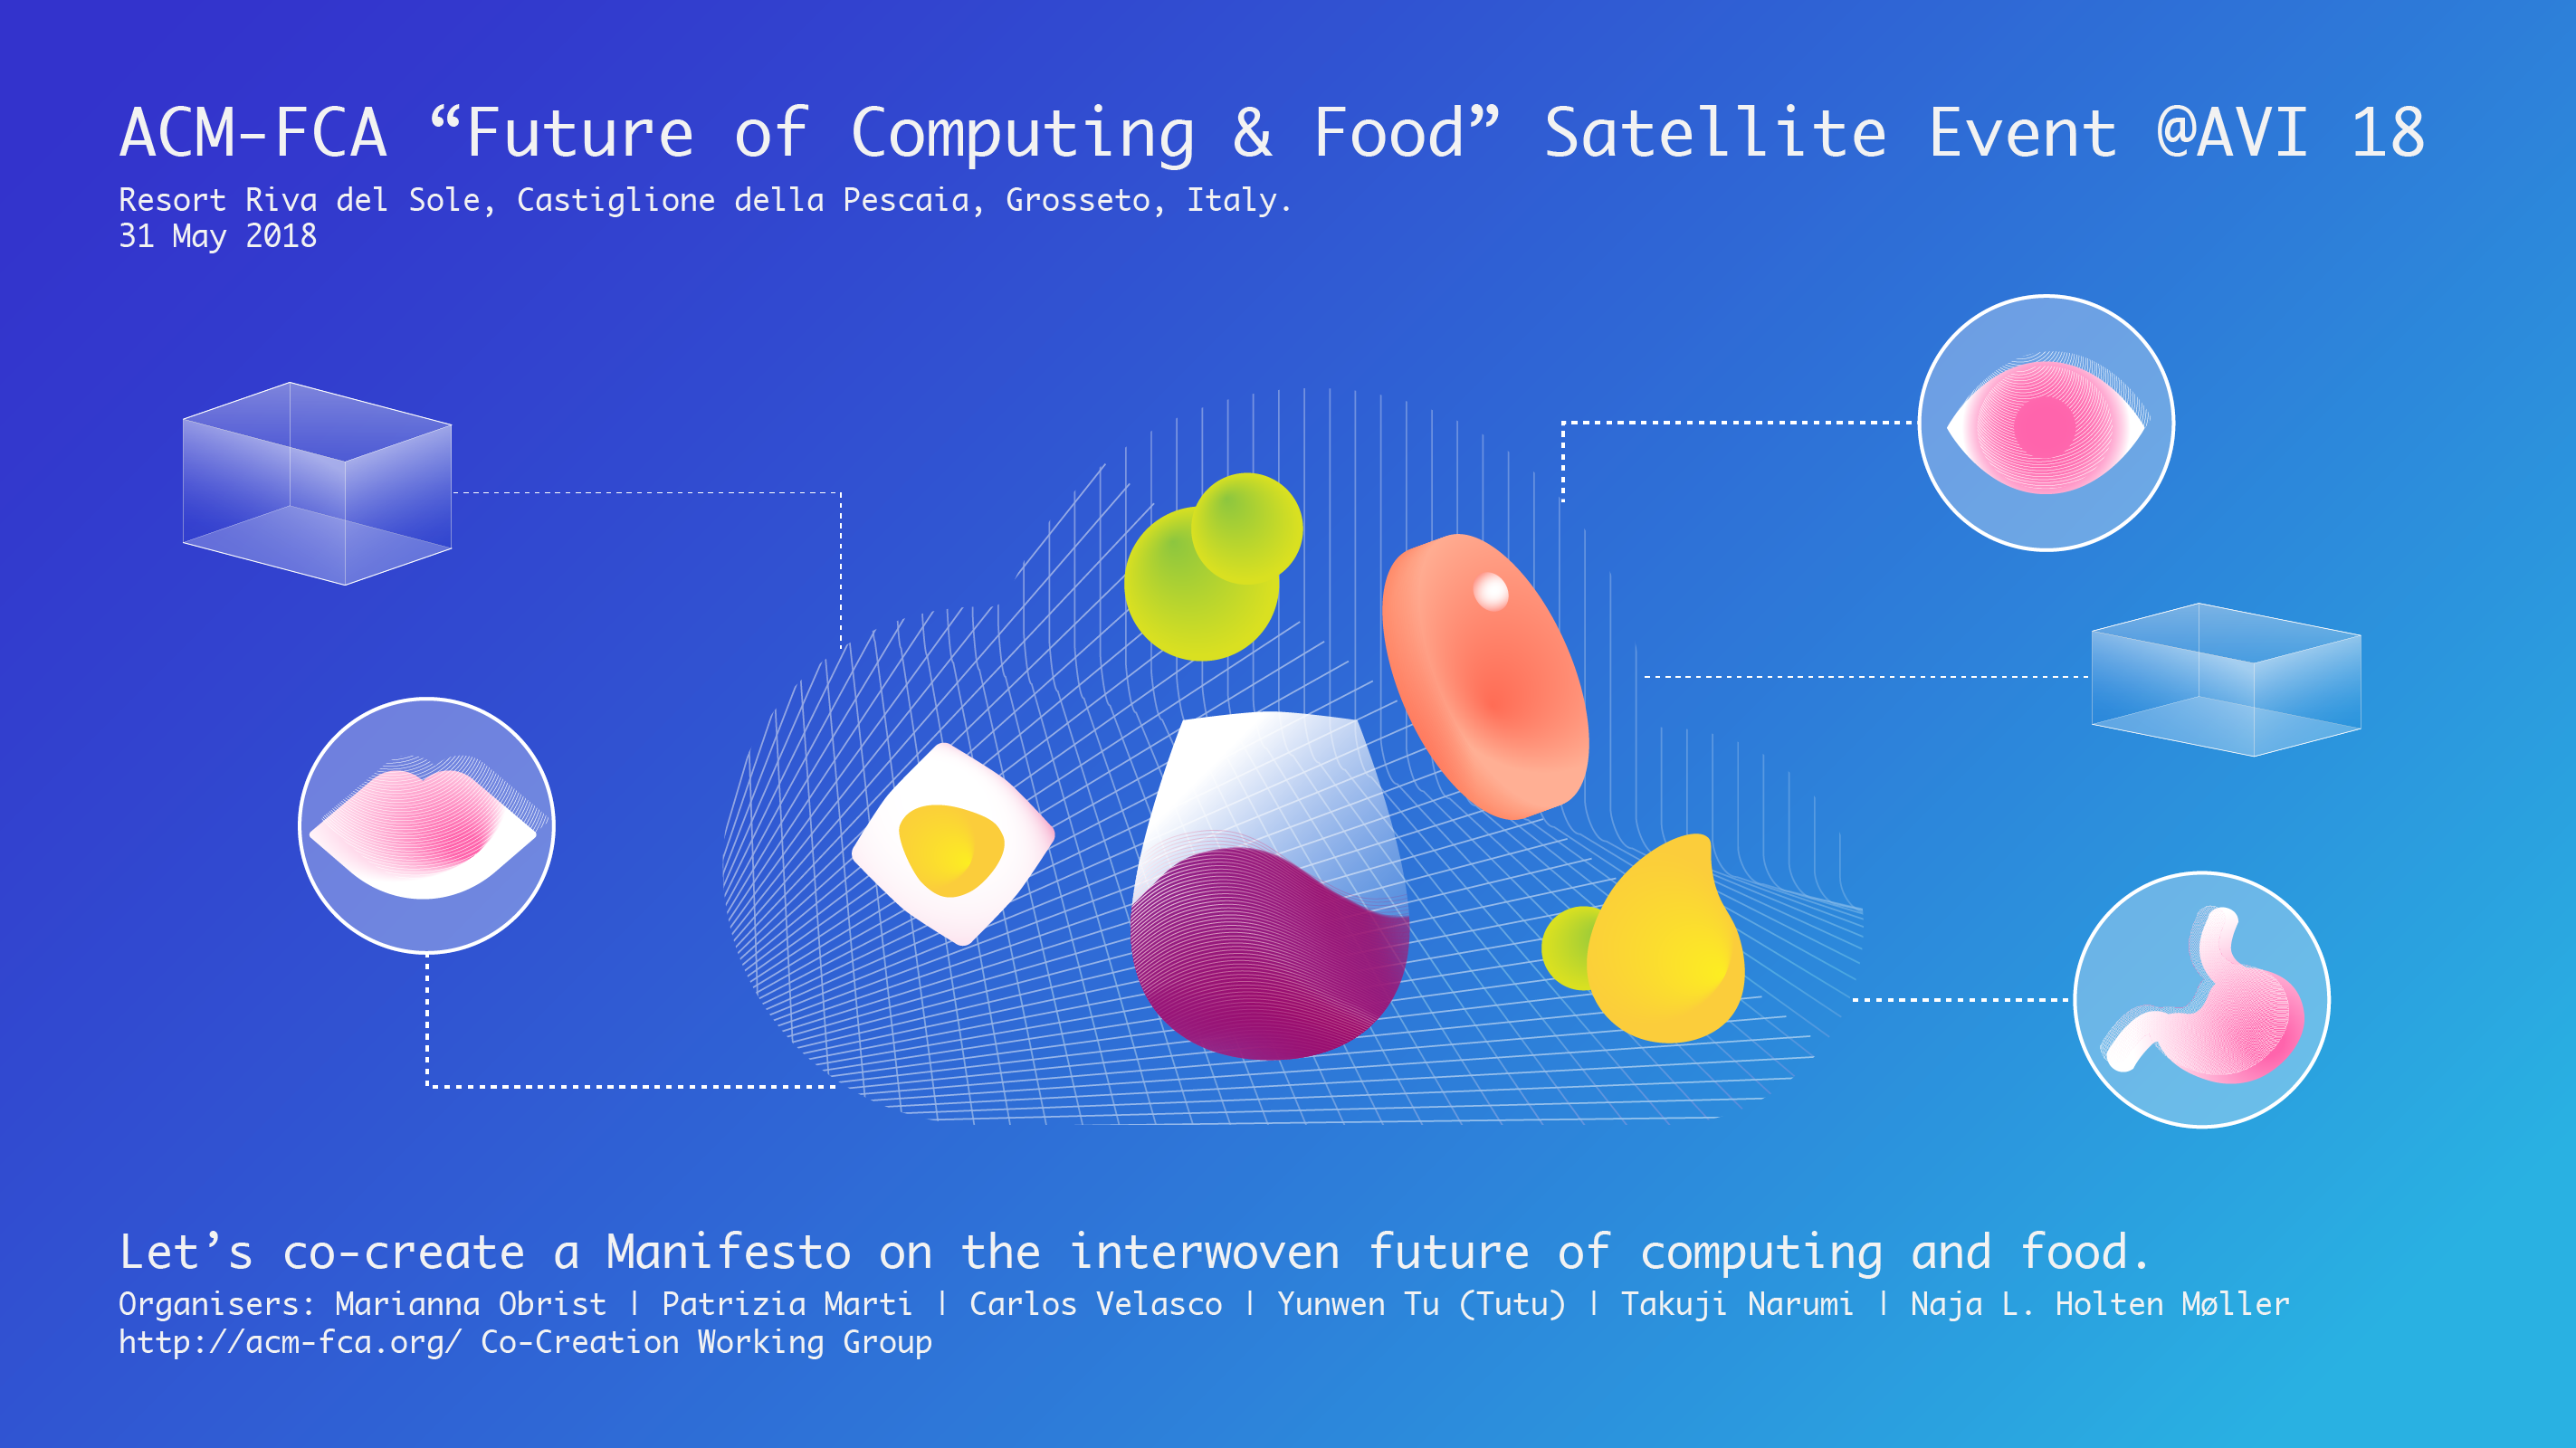 acm-fca future of computing and food-01.png